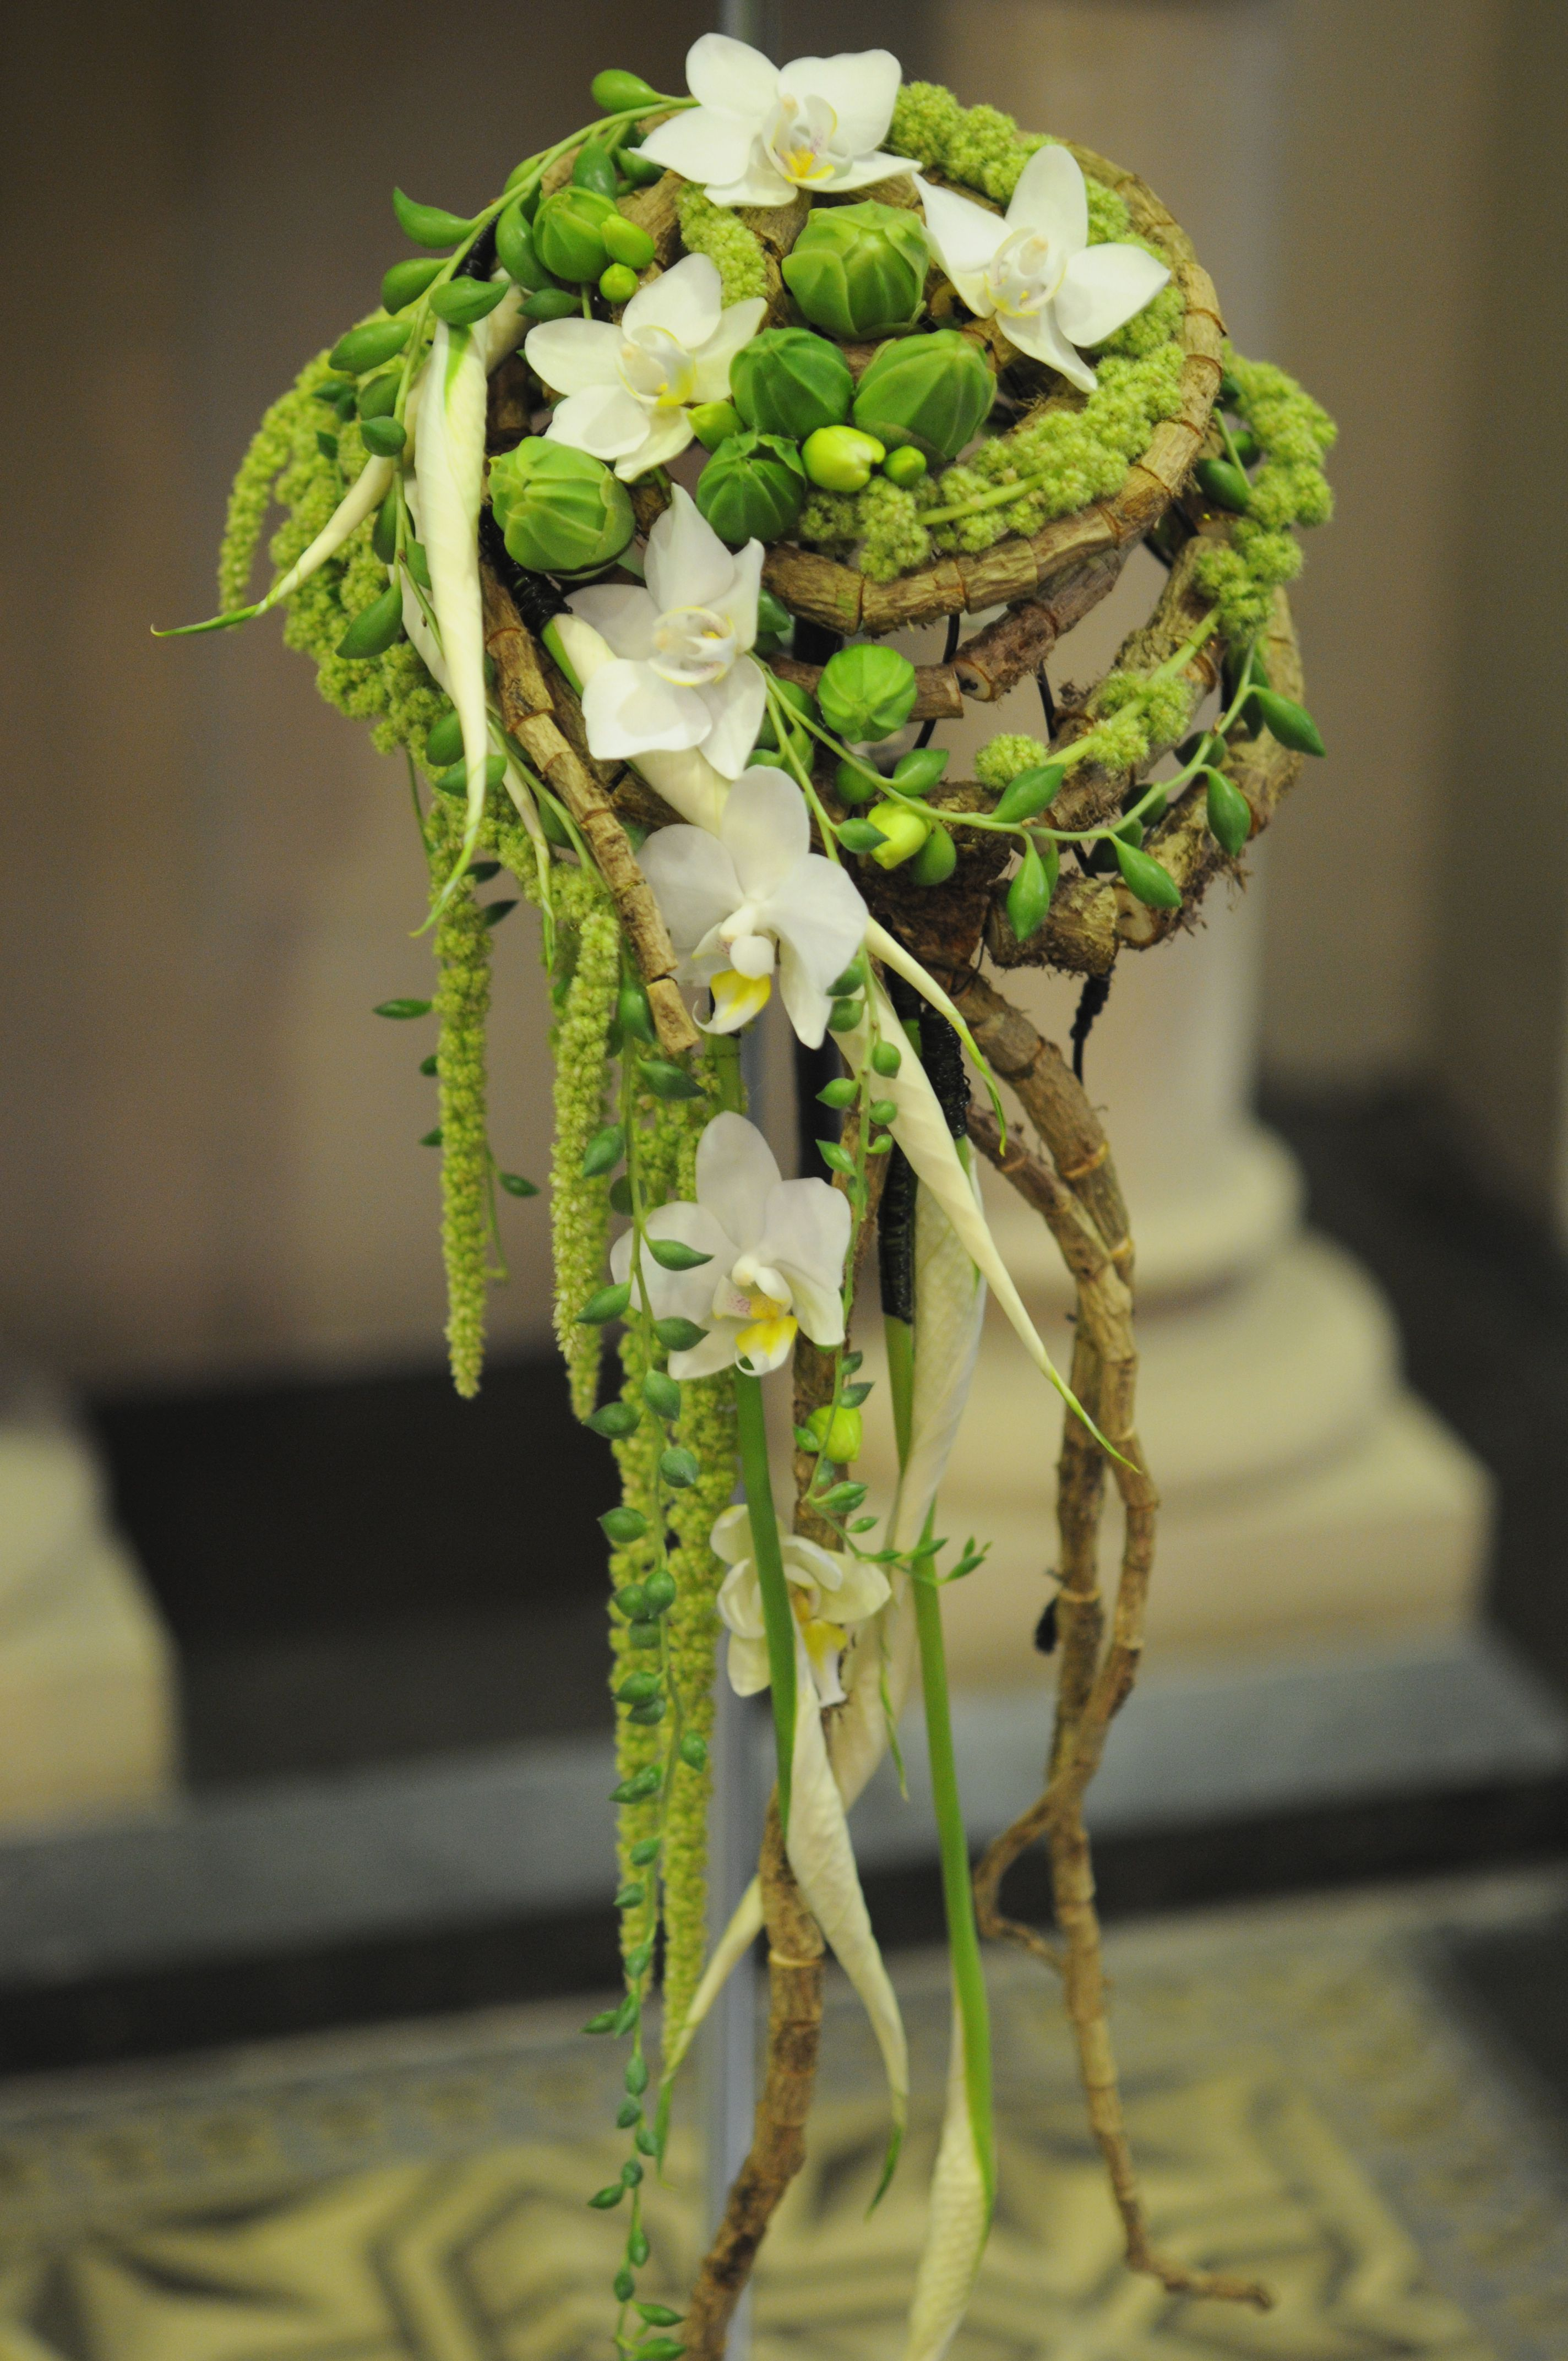 Amazing texture of spathyphyllum spathe orchids string of bananas